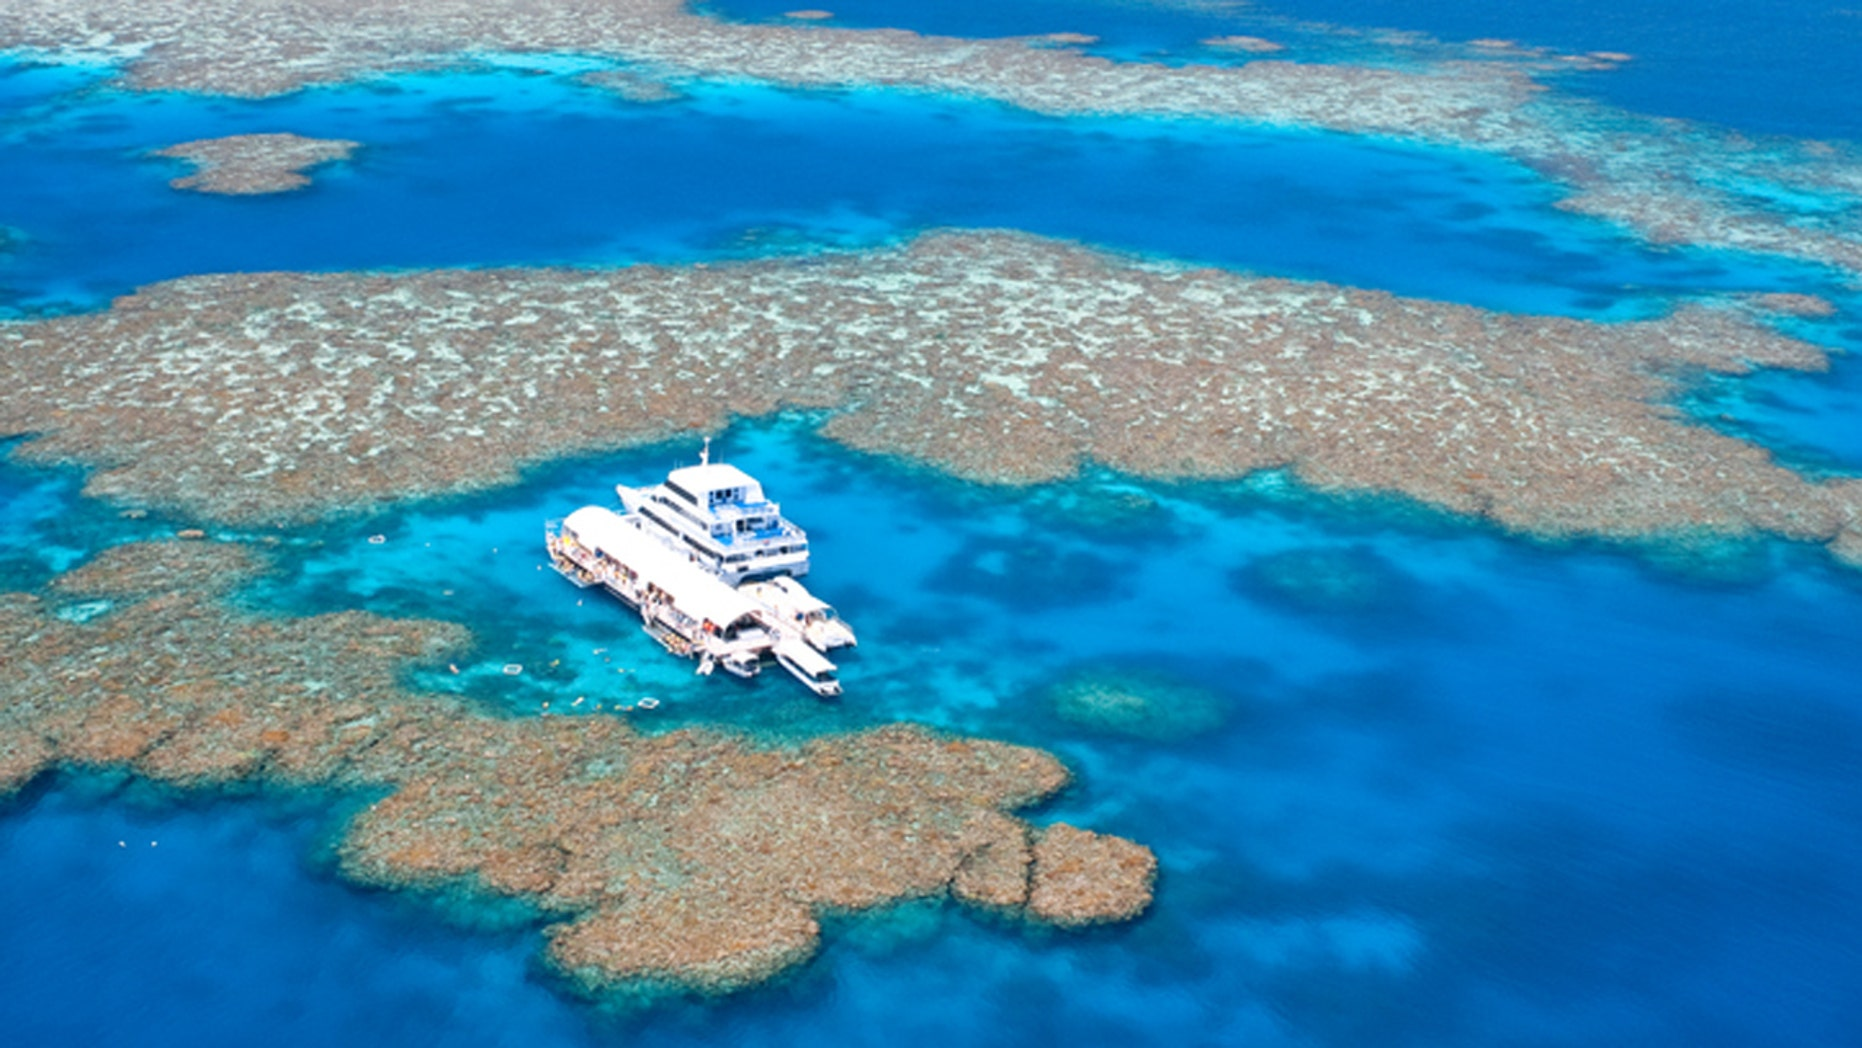 The Great Barrier Reef is the world's largest coral reef ecosystem.